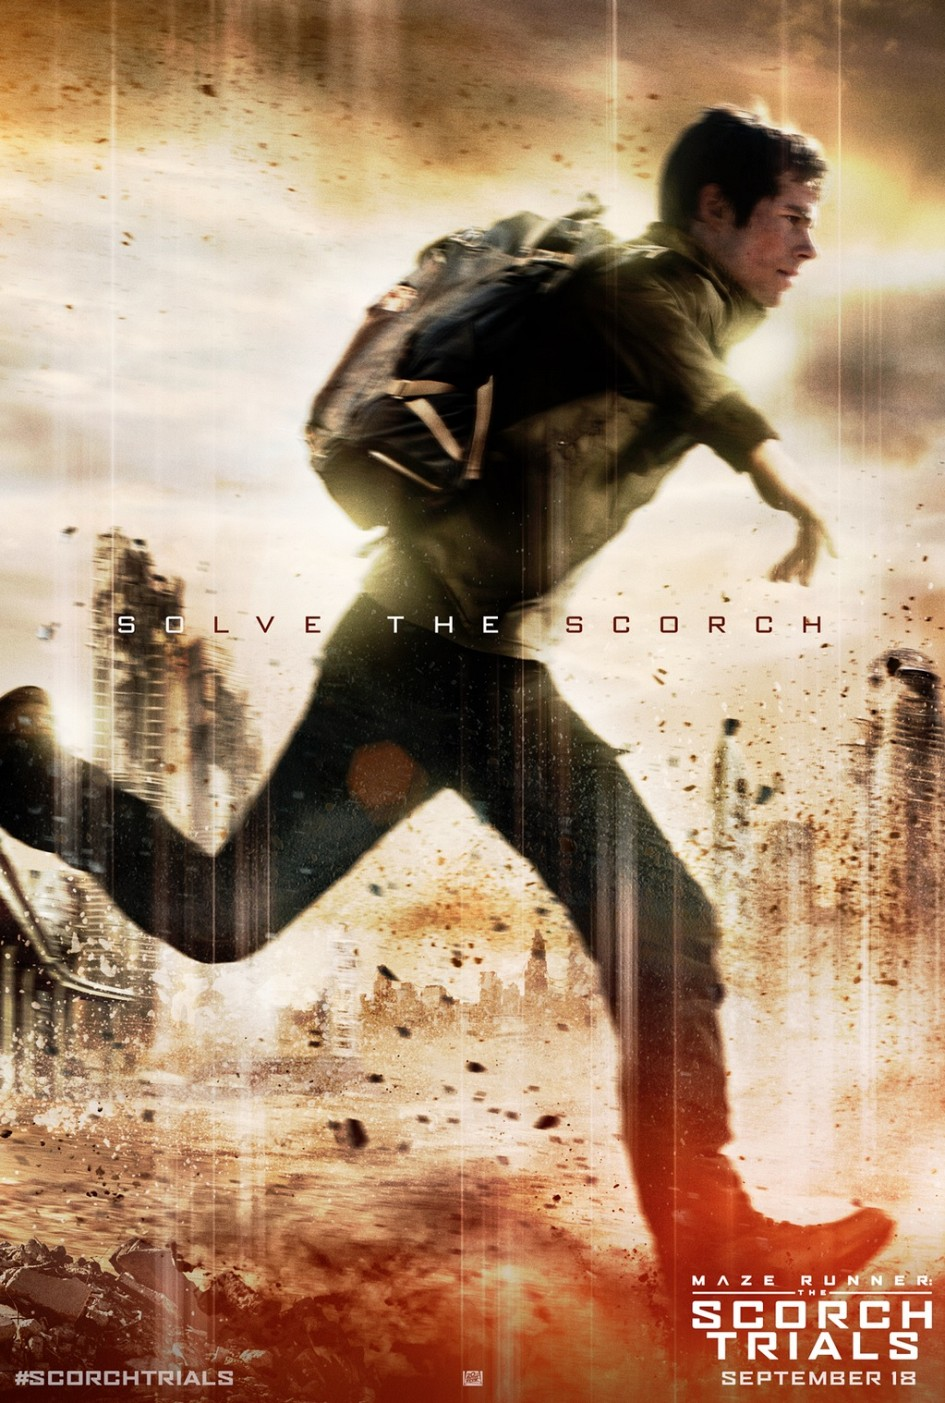 Scorch trials movie release date : James and the giant peach